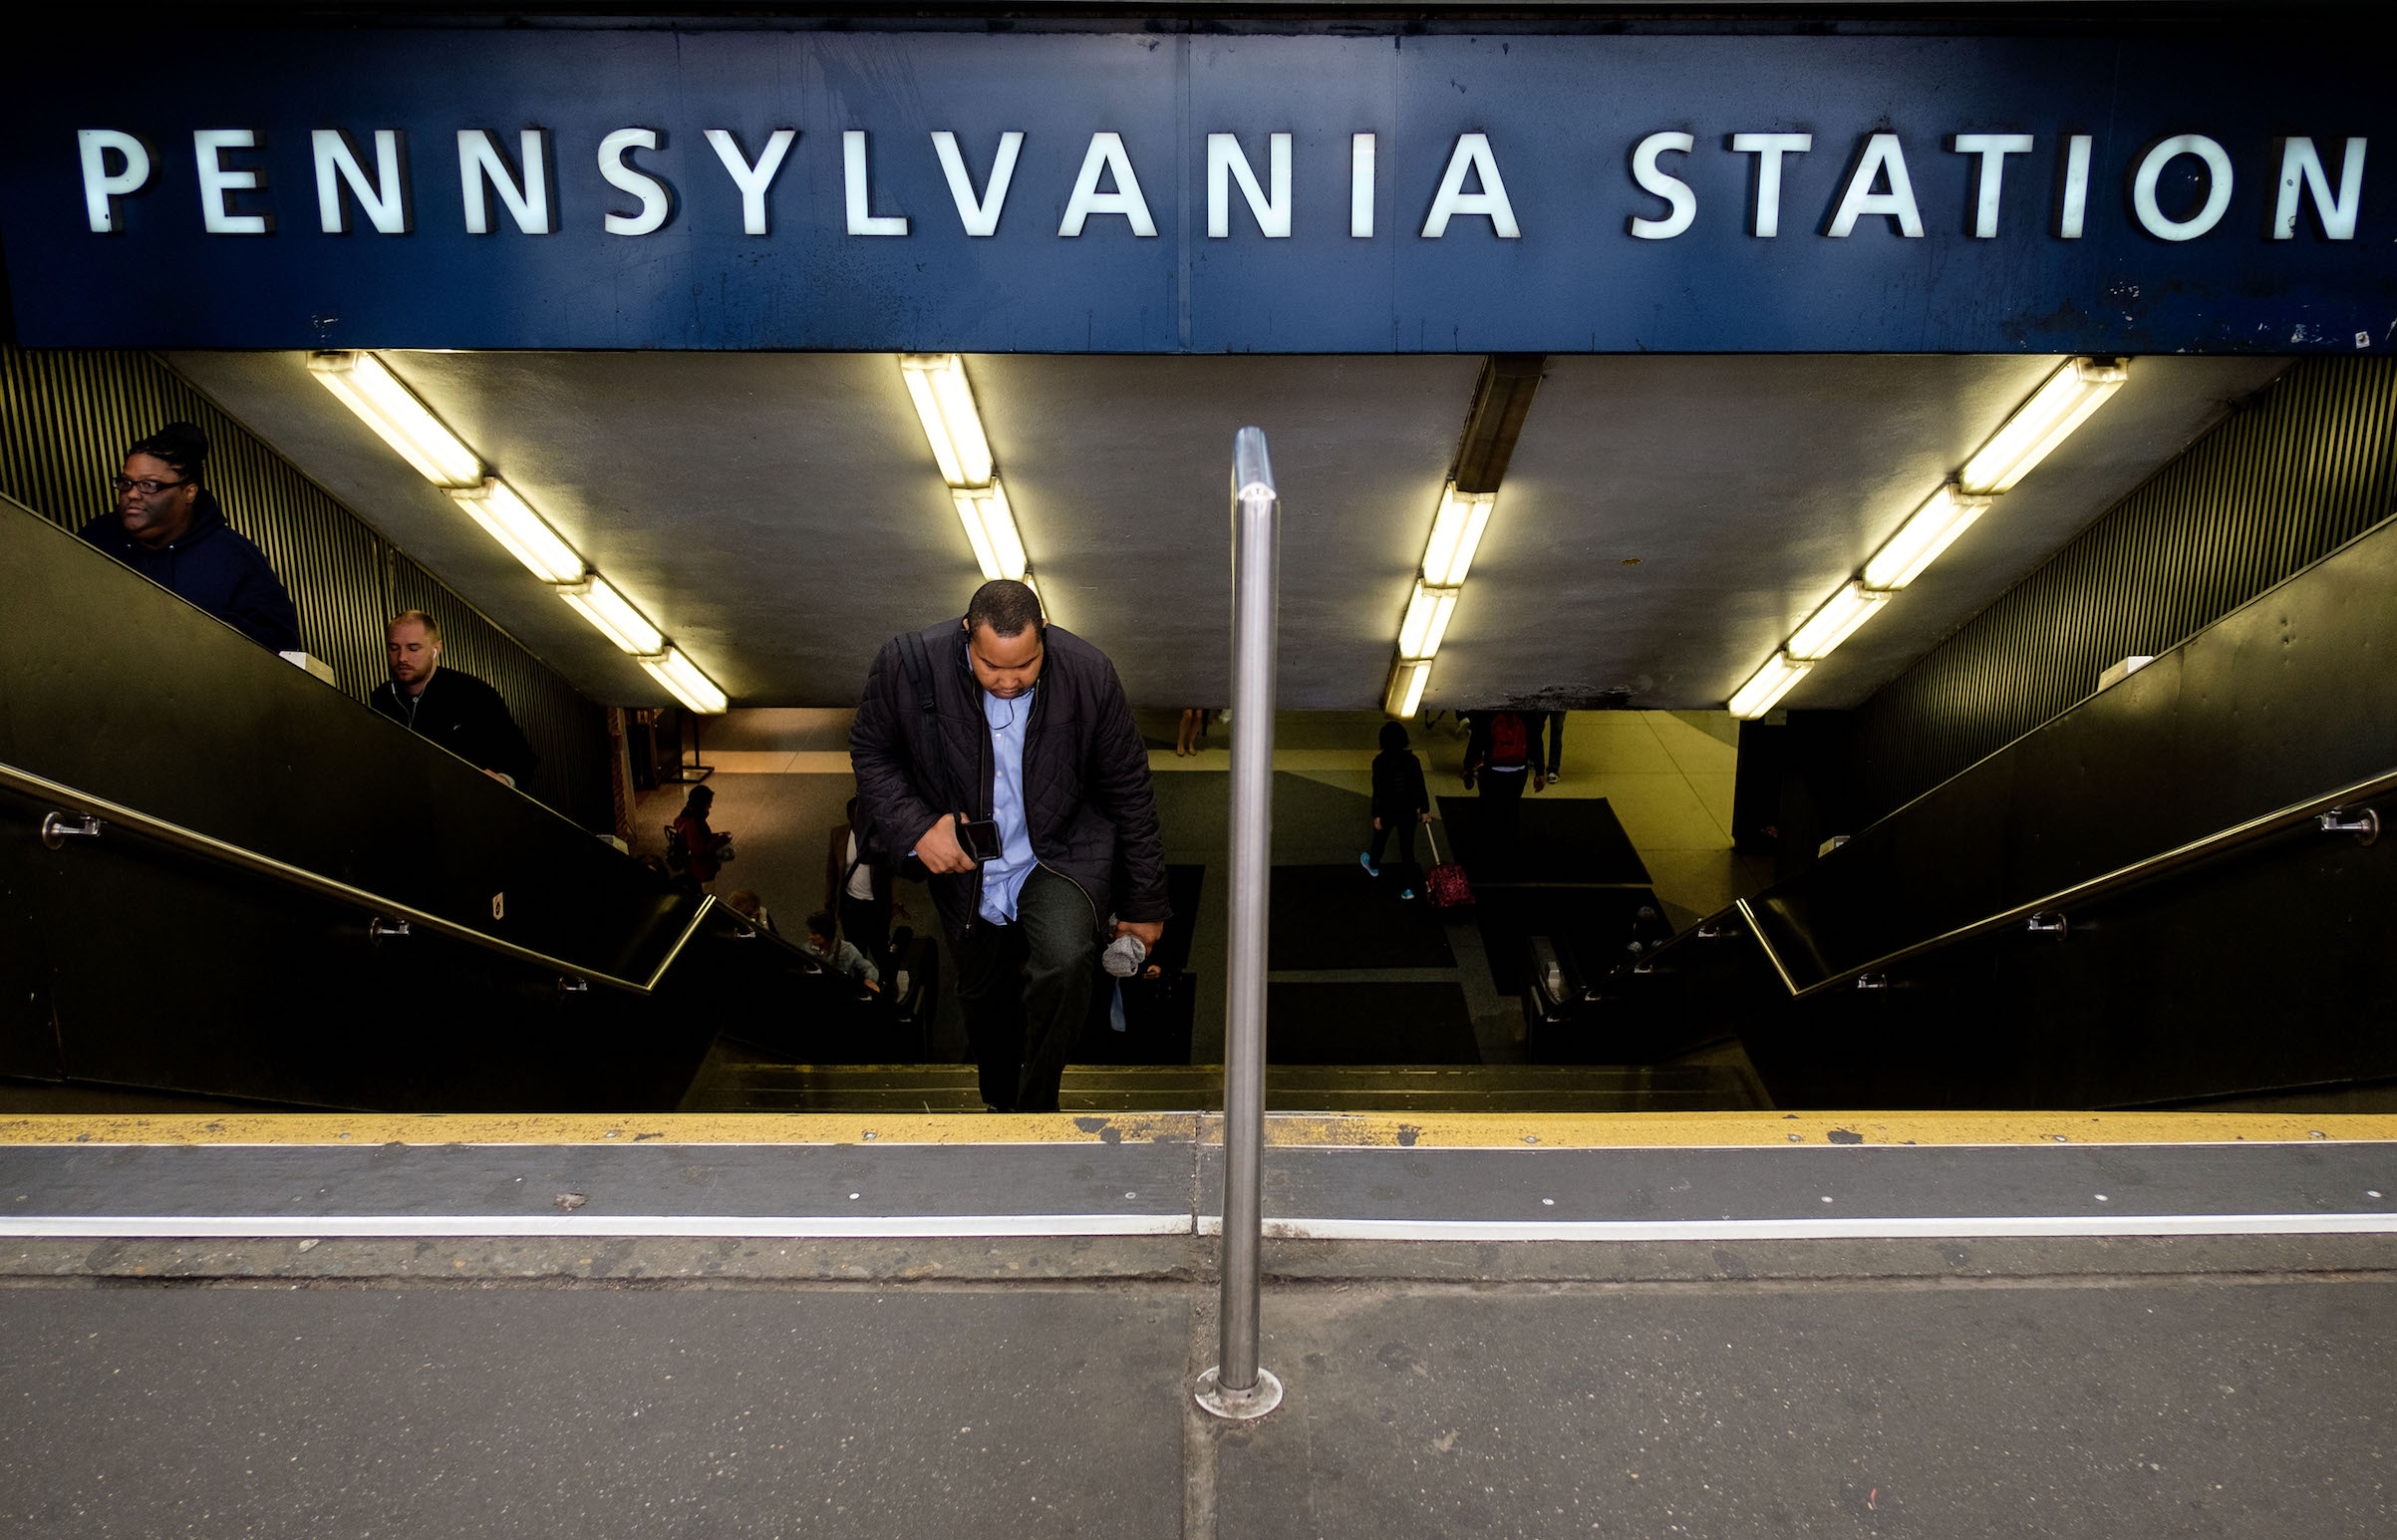 Travelers exit Pennsylvania Station, May 31, 2017 in New York City.